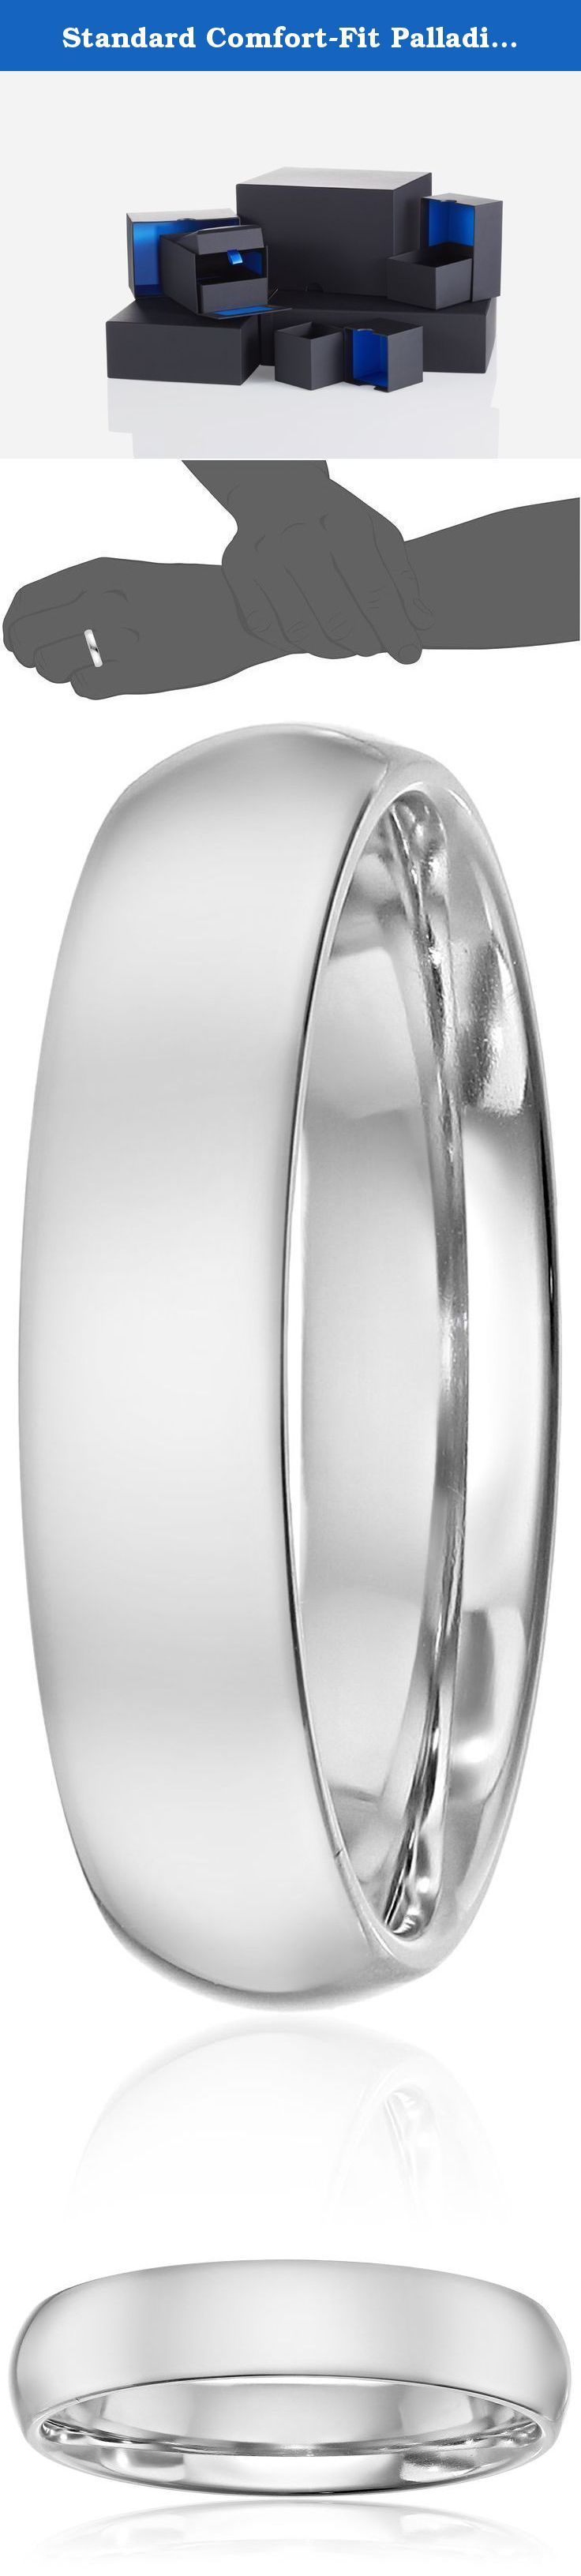 Standard Comfort-Fit Palladium Band, 5mm, Size 10. With its sleek metallic design, the Men's Palladium Comfort Fit Wedding Band Ring with Luxury High Polish is a classic piece he will enjoy wearing every day. This ring is 5mm in width and is polished to reveal incredible shine. Embracing comfort-fit design, the band grants relaxing wear from day to night. Crafted out of Palladium, a white precious metal from the platinum group, it is a quality accessory that will last.